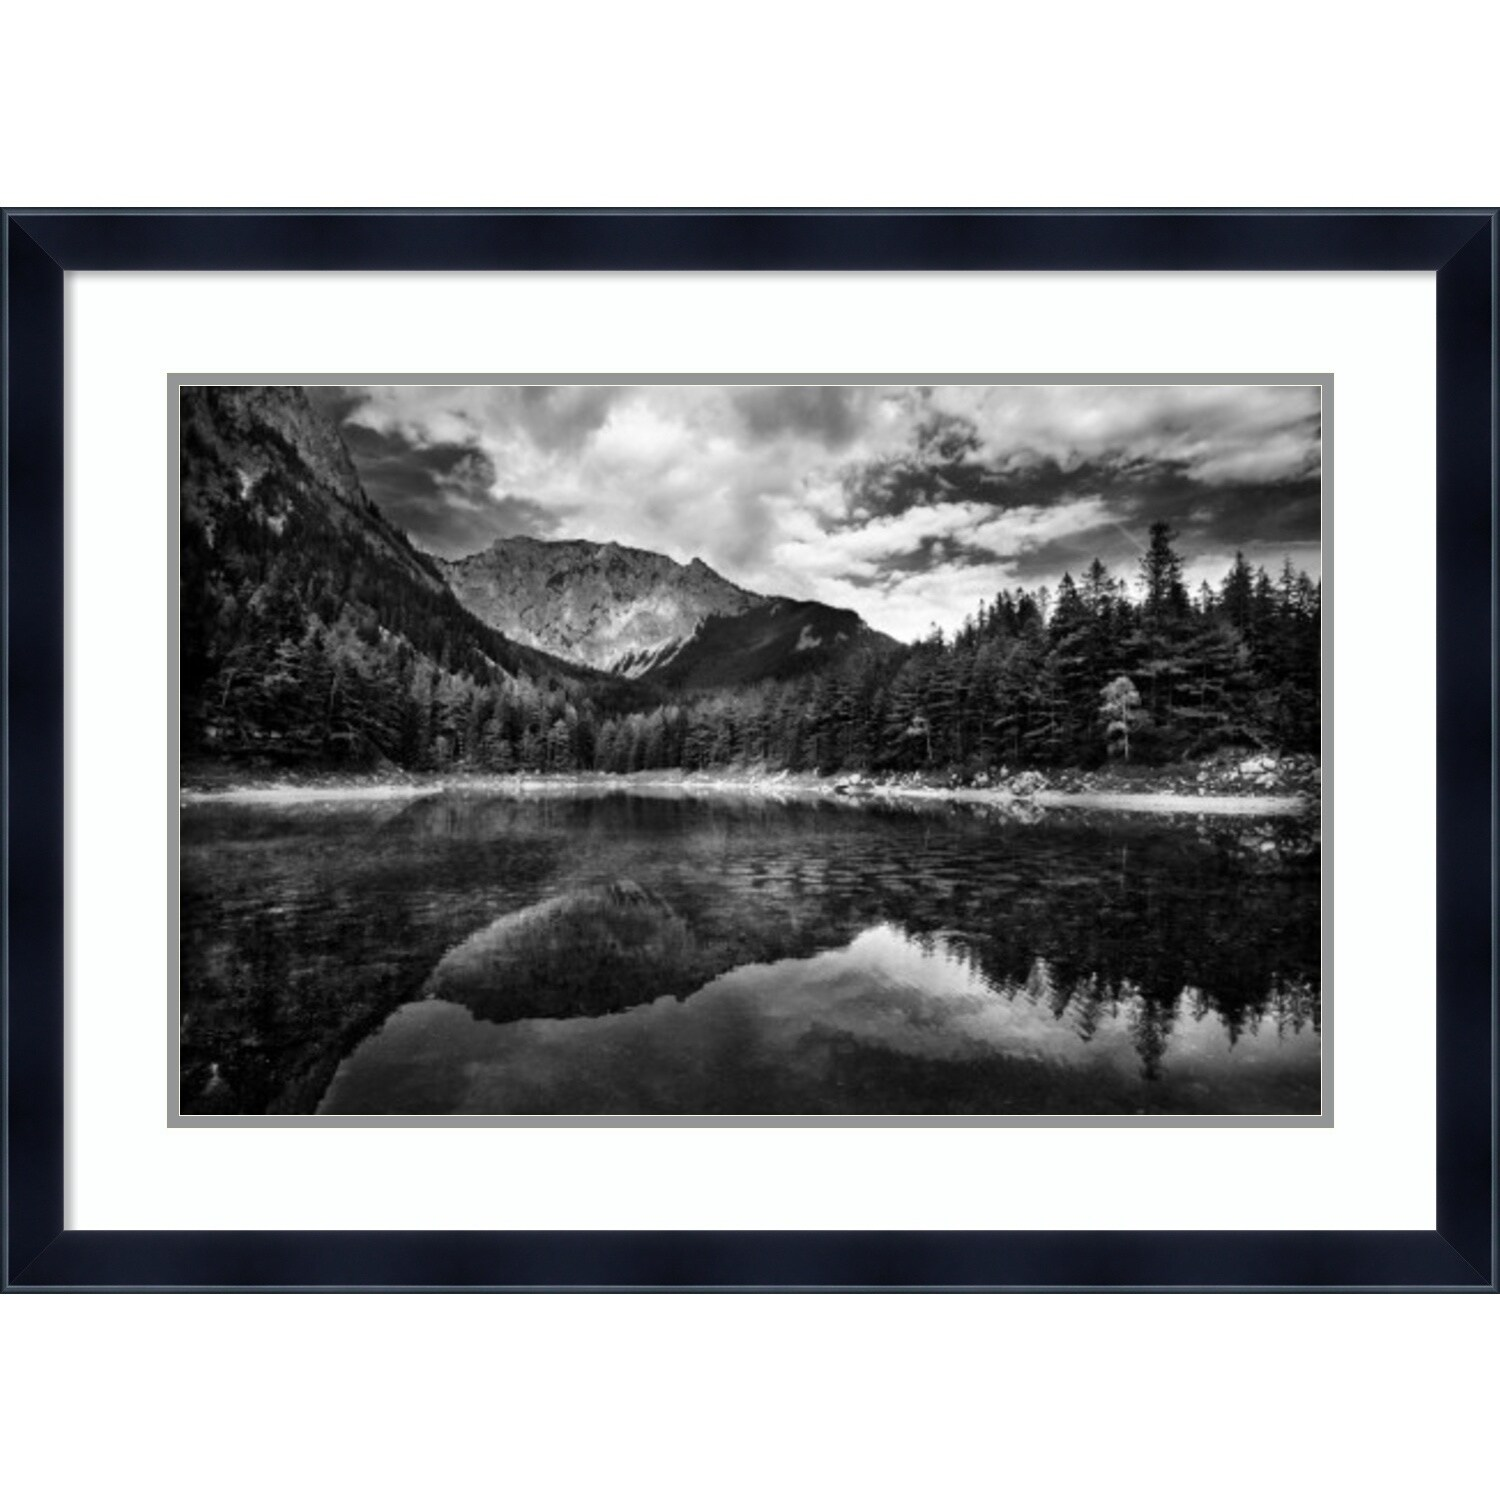 Framed art print black and white mountain by dragan jovancevic